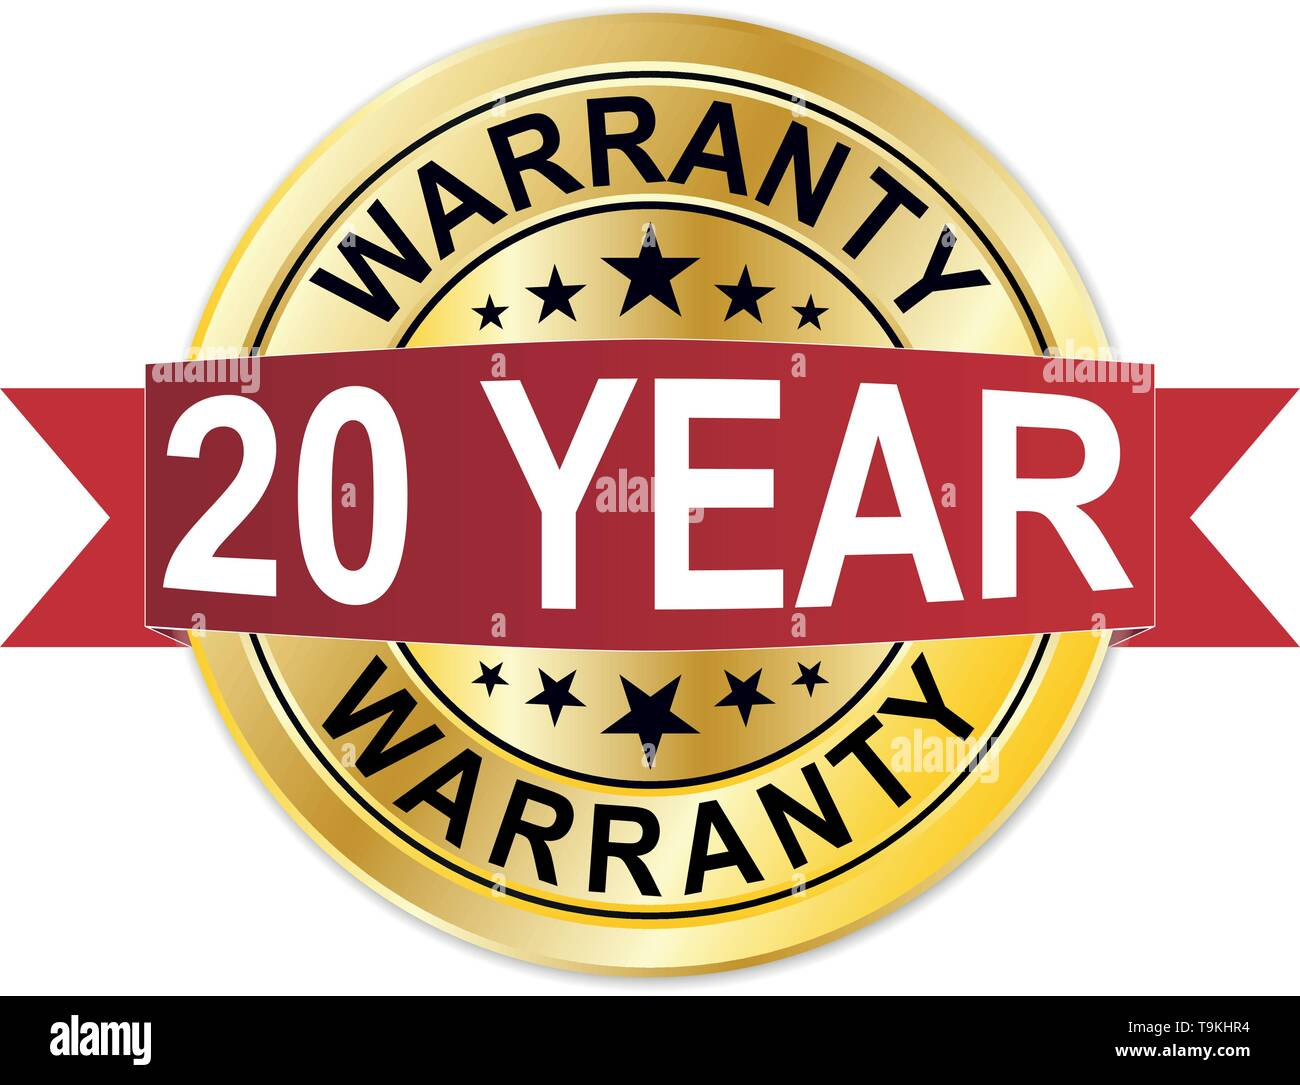 warranty 20 years of experience golden label - Stock Vector